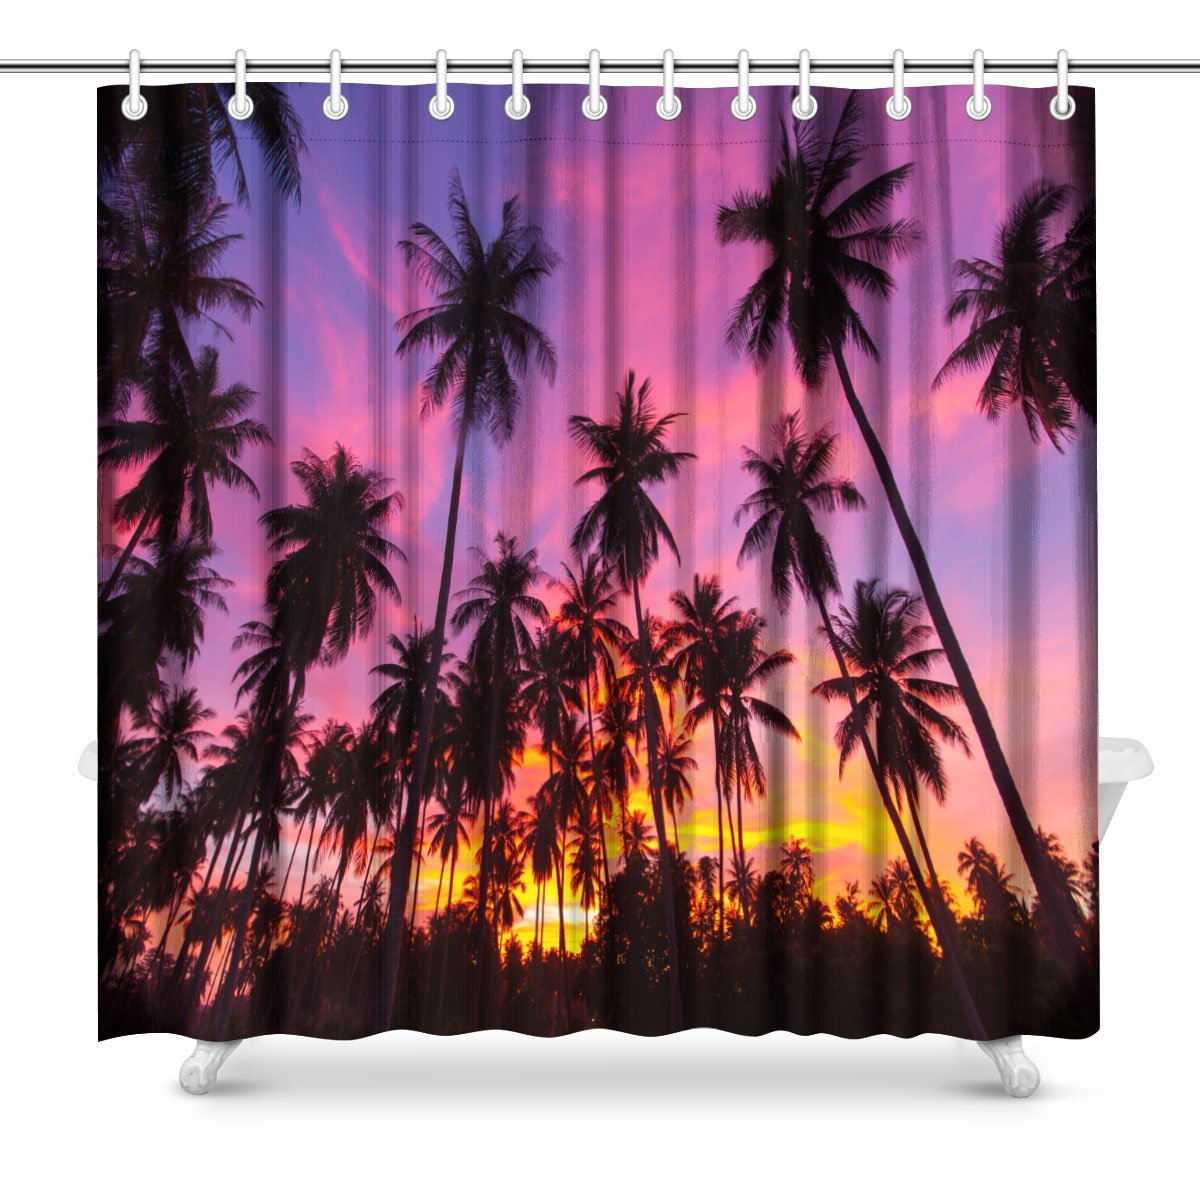 Us 16 94 20 Off Coconut Palm Tree Silhouette At Koh Samui Thailand Polyester Fabric Bathroom Shower Curtain Set With Hooks In Shower Curtains From